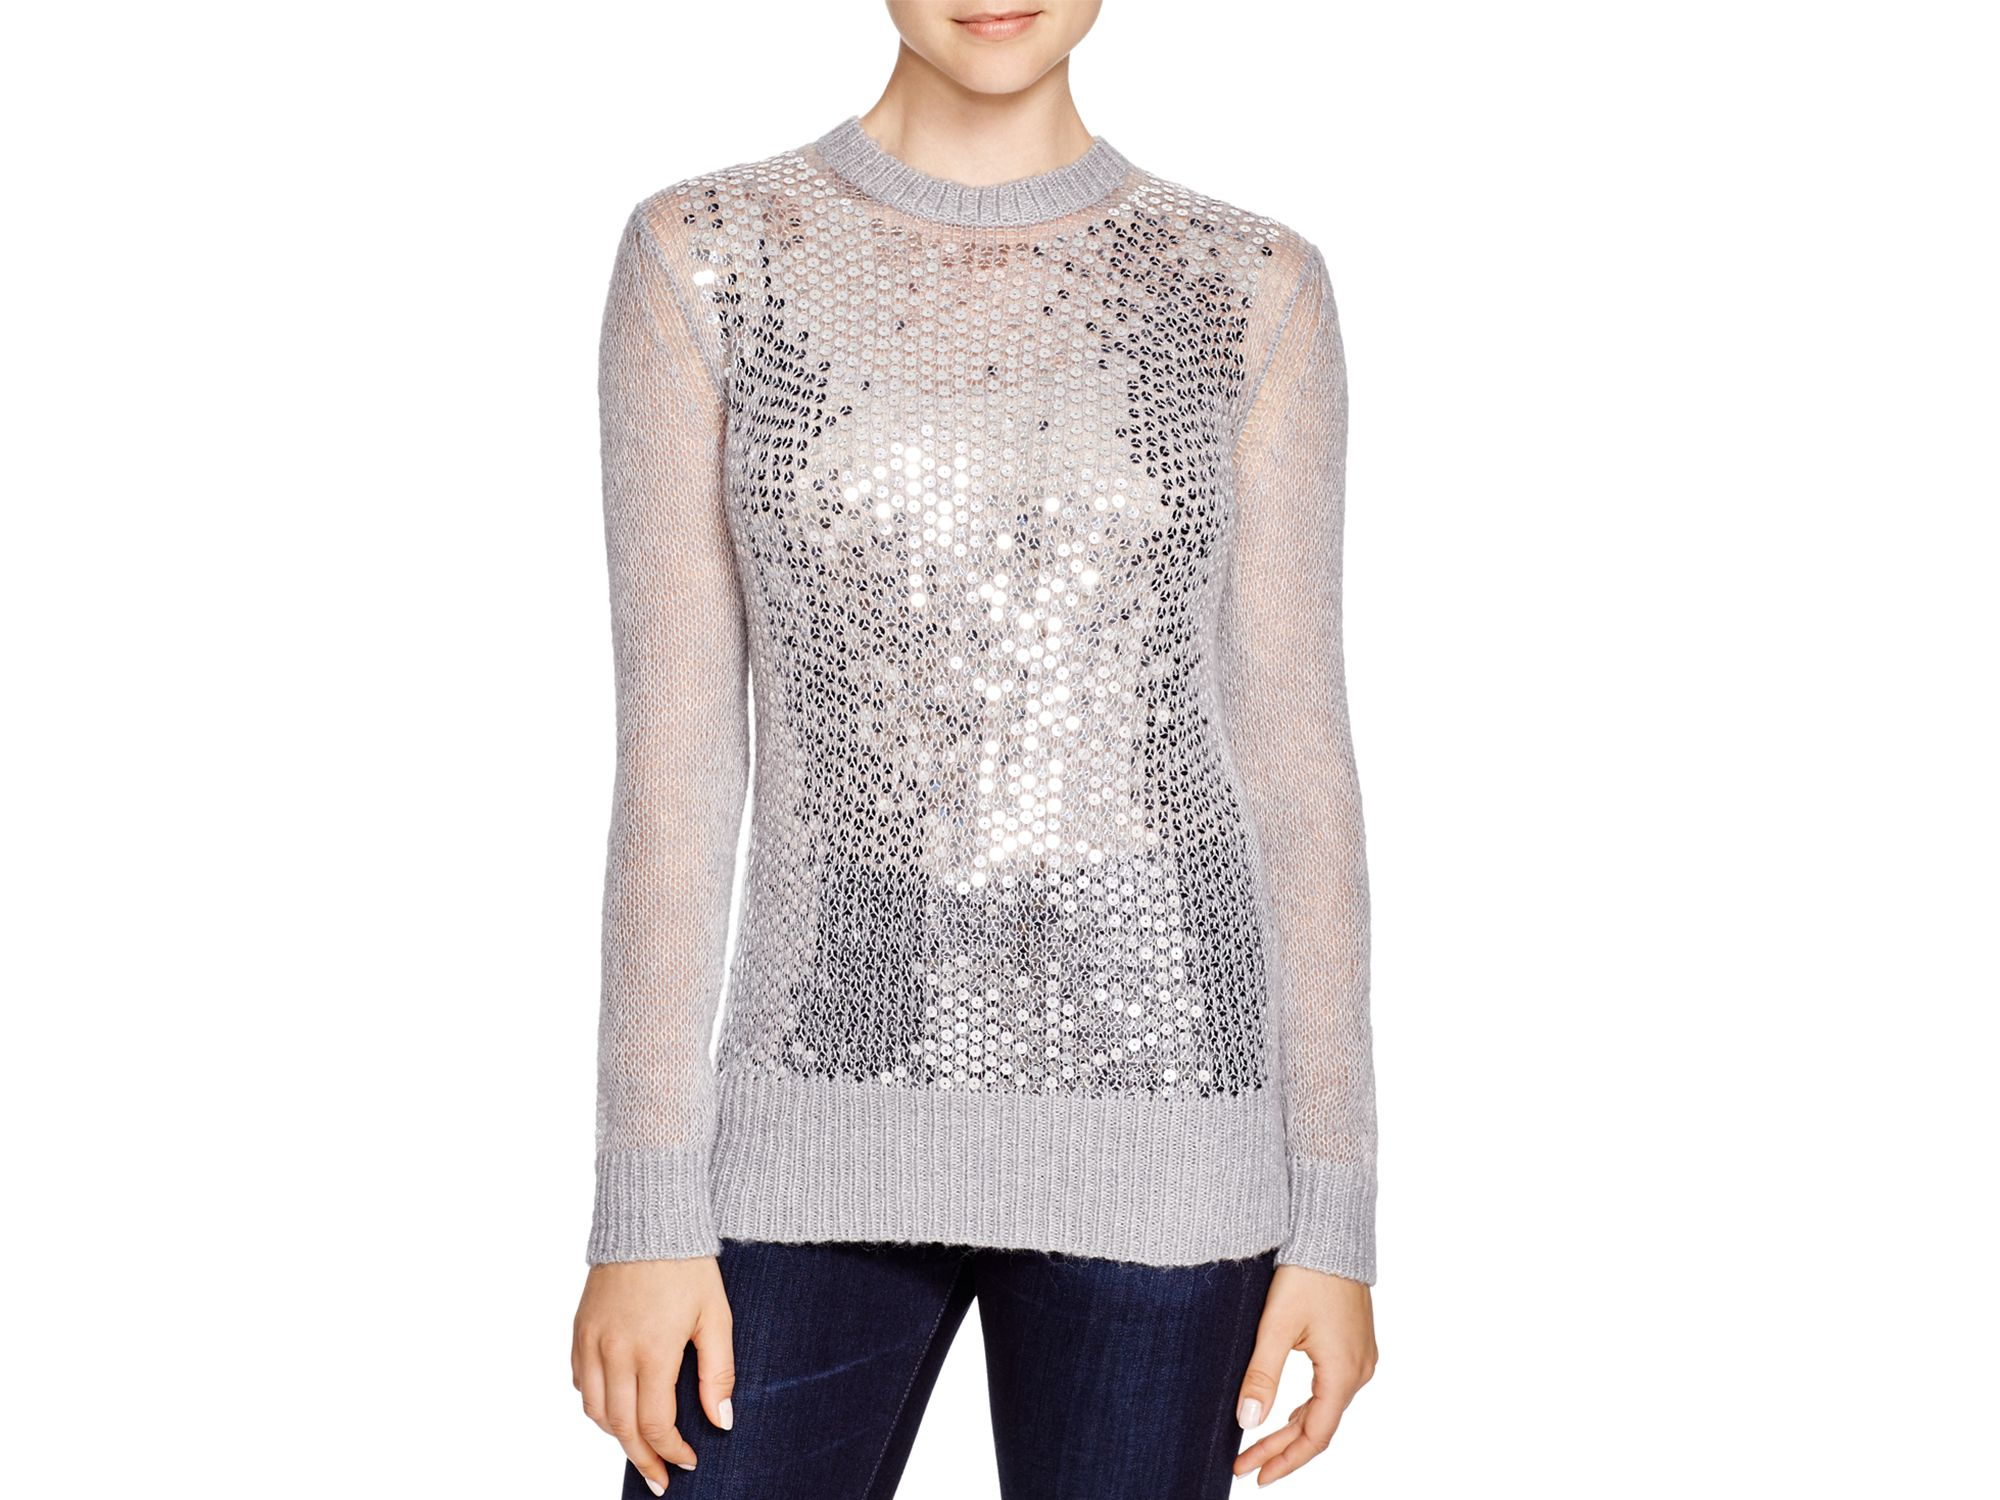 Michael michael kors Sequined Open Knit Sweater in Gray | Lyst